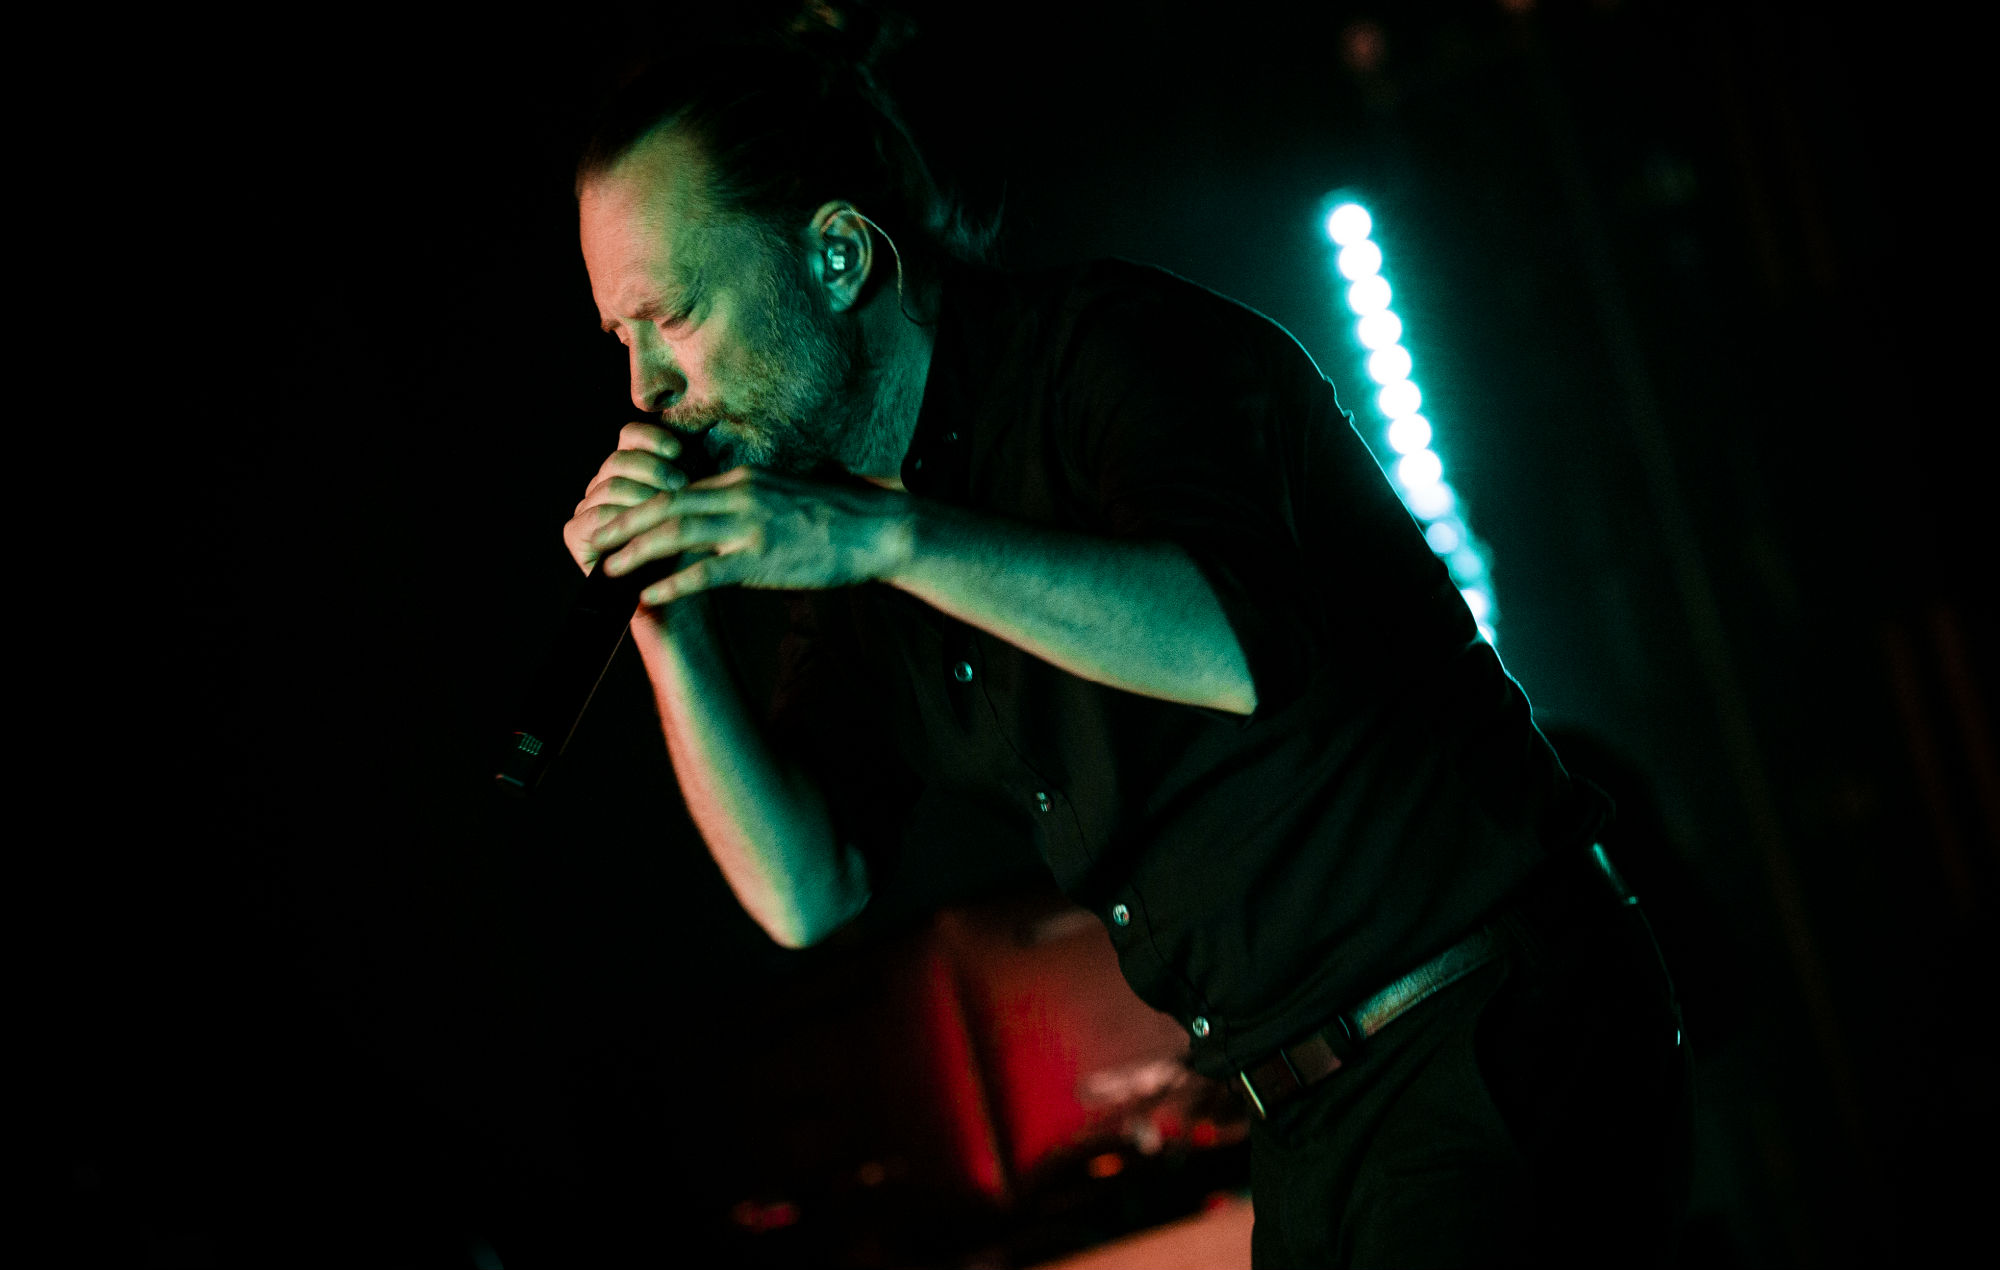 Watch Thom Yorke perform haunting new ballad 'Daily Battles' on 'Colbert'